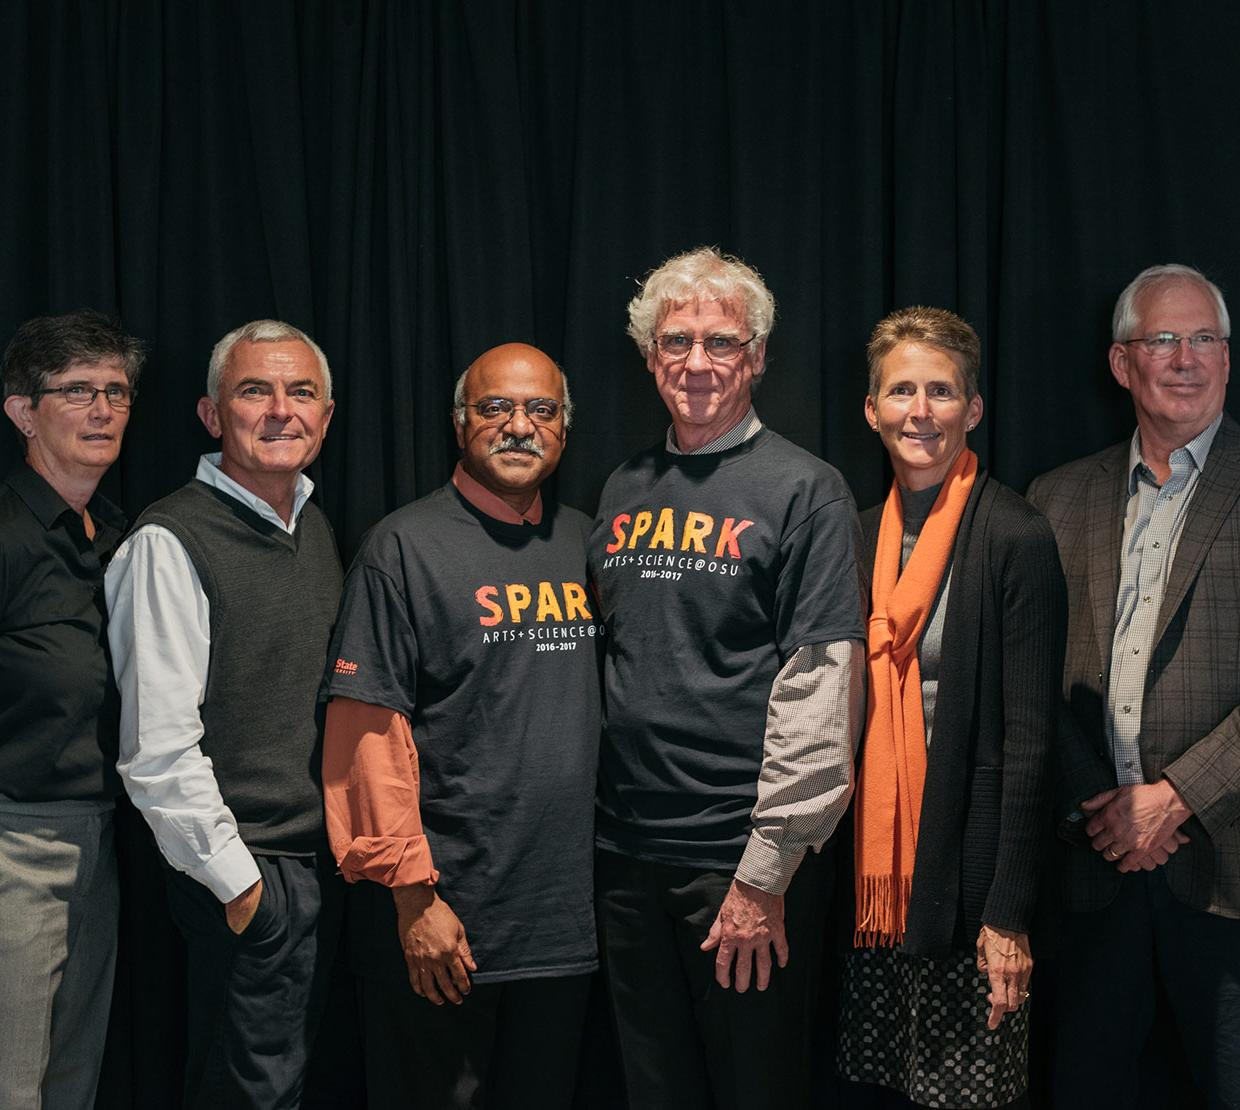 group picture of SPARK event leaders in event shirts